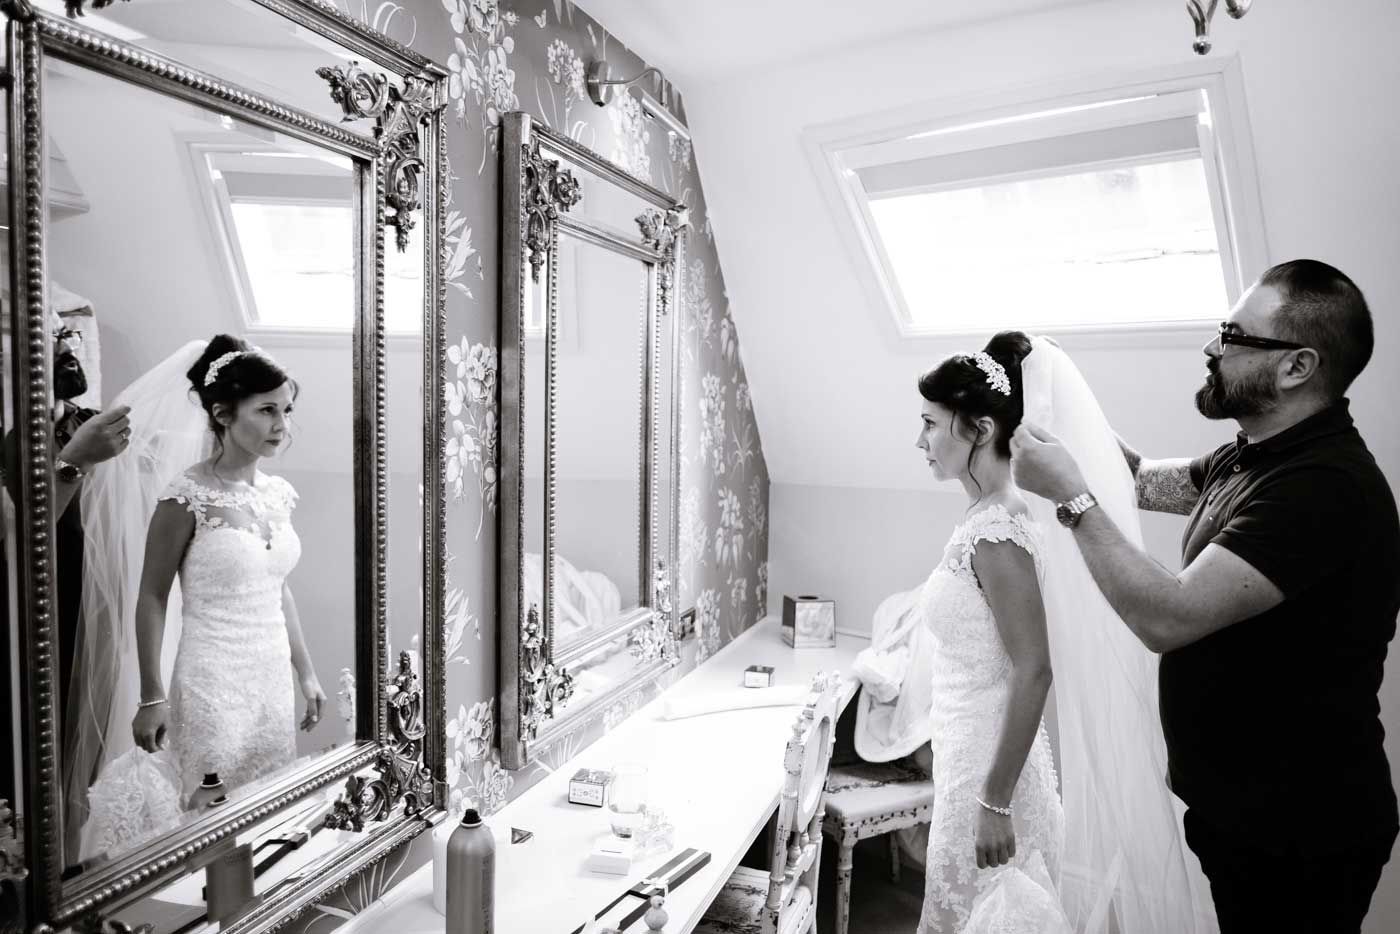 Bride's veil being put on as photographed by Stanbrook Abbey wedding photographer Clive Blair Photography